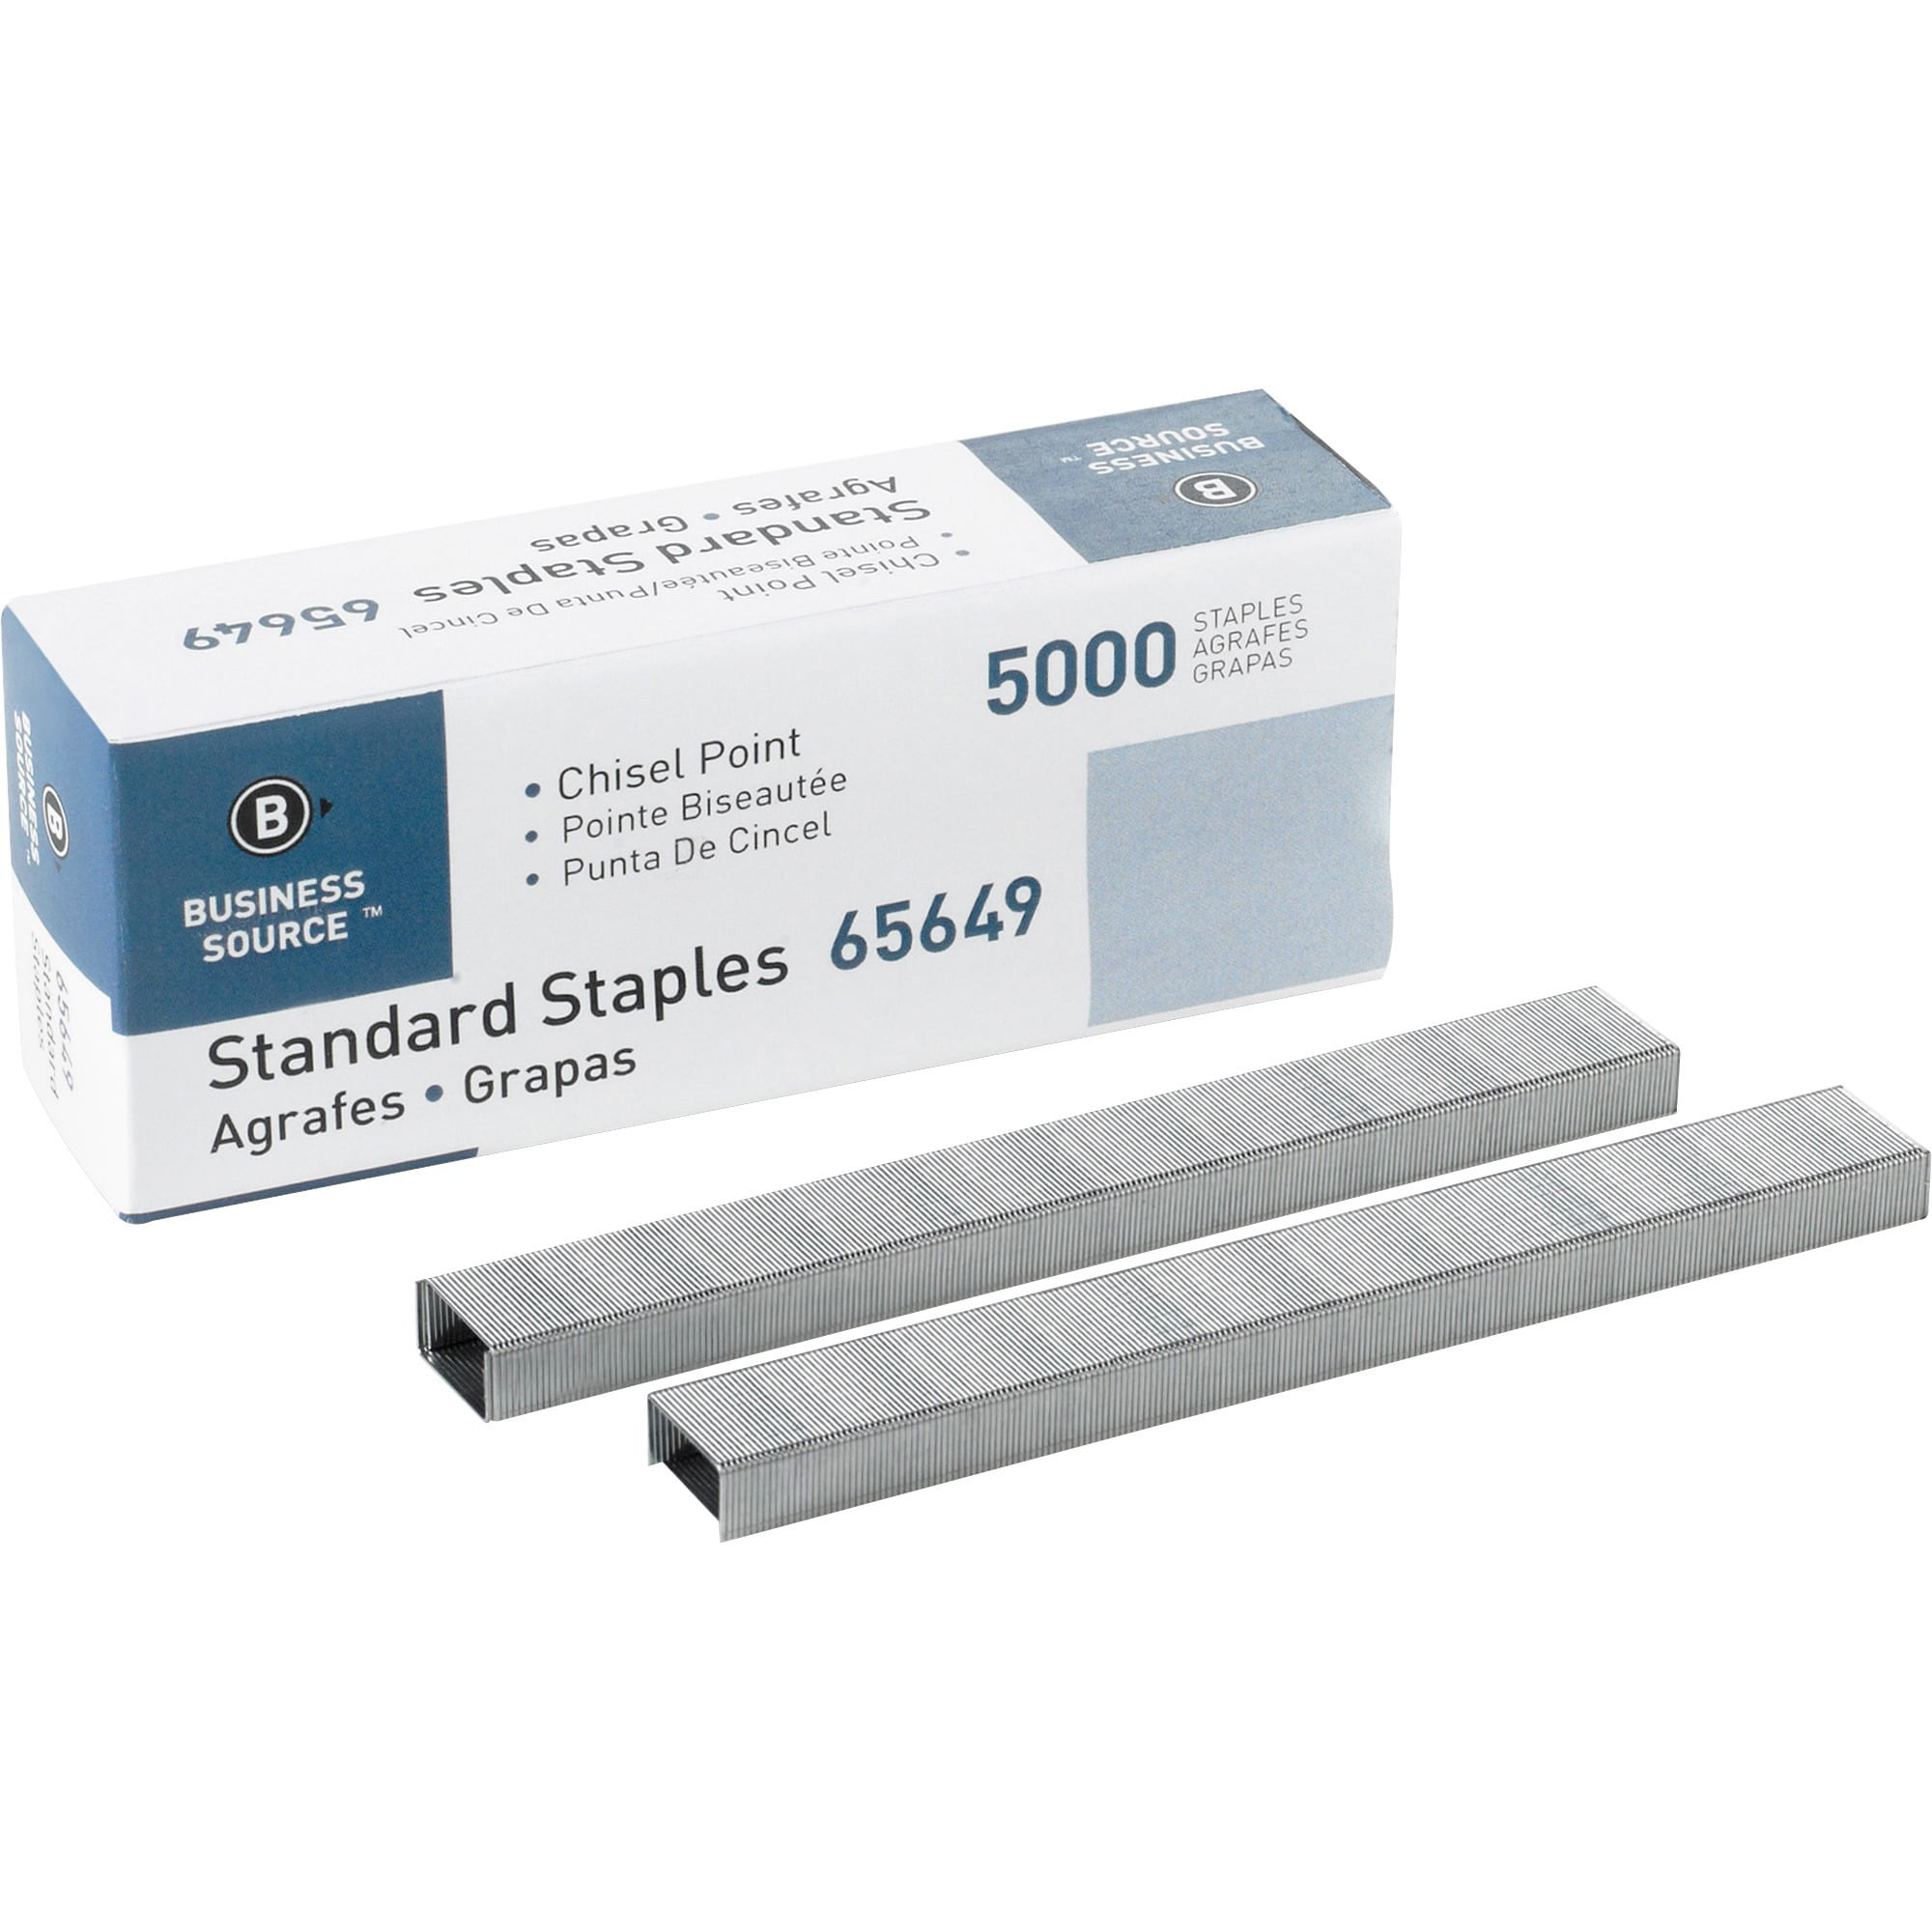 Business Source, BSN65649, Chisel Point Standard Staples, 5000   Box, Silver by Business Source